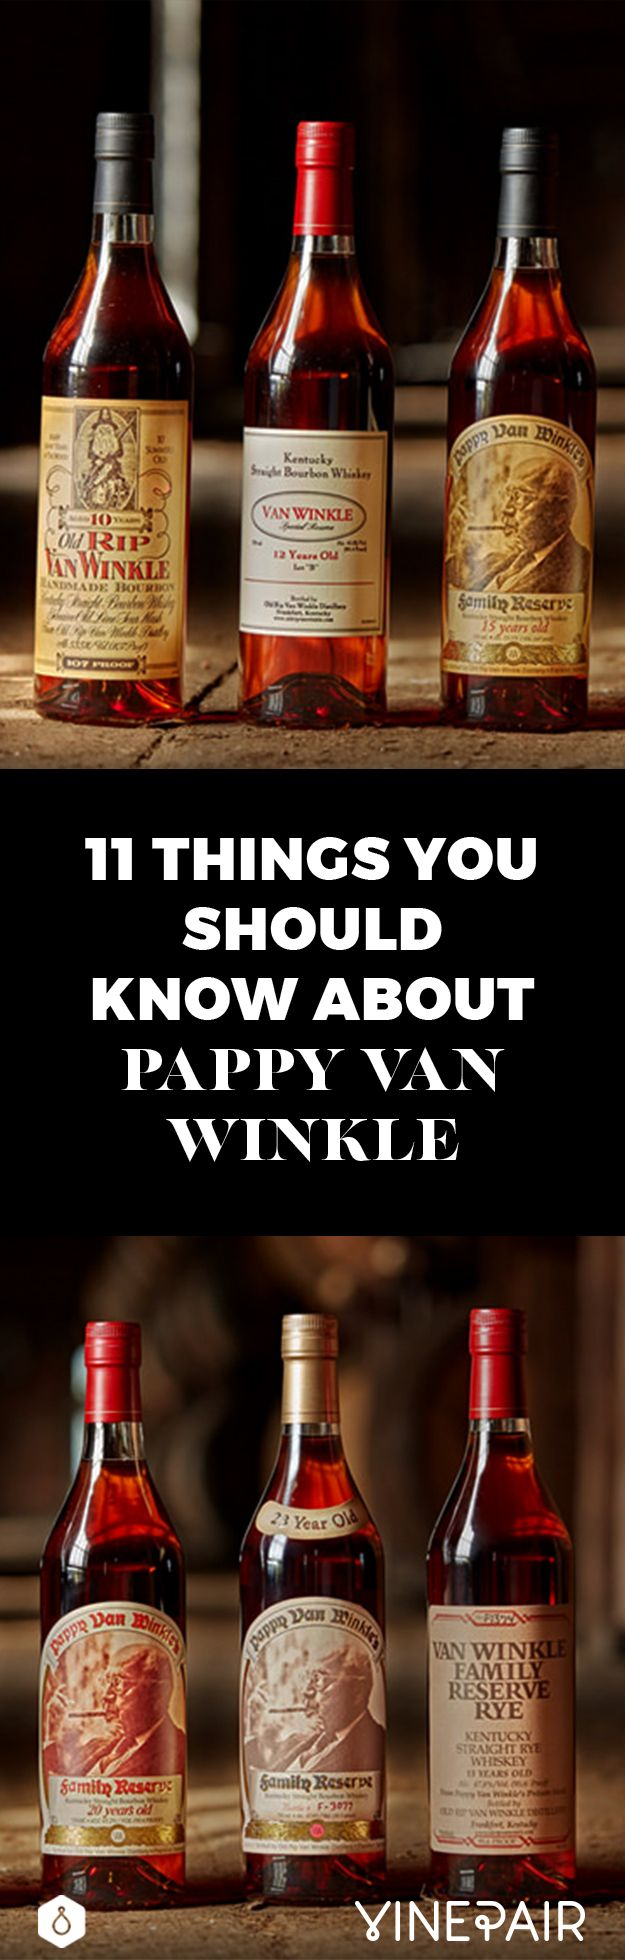 If there's a royal first name in bourbon, it's Pappy Van Winkle. Here's everything you need to know about the most cherished bourbon whiskey.